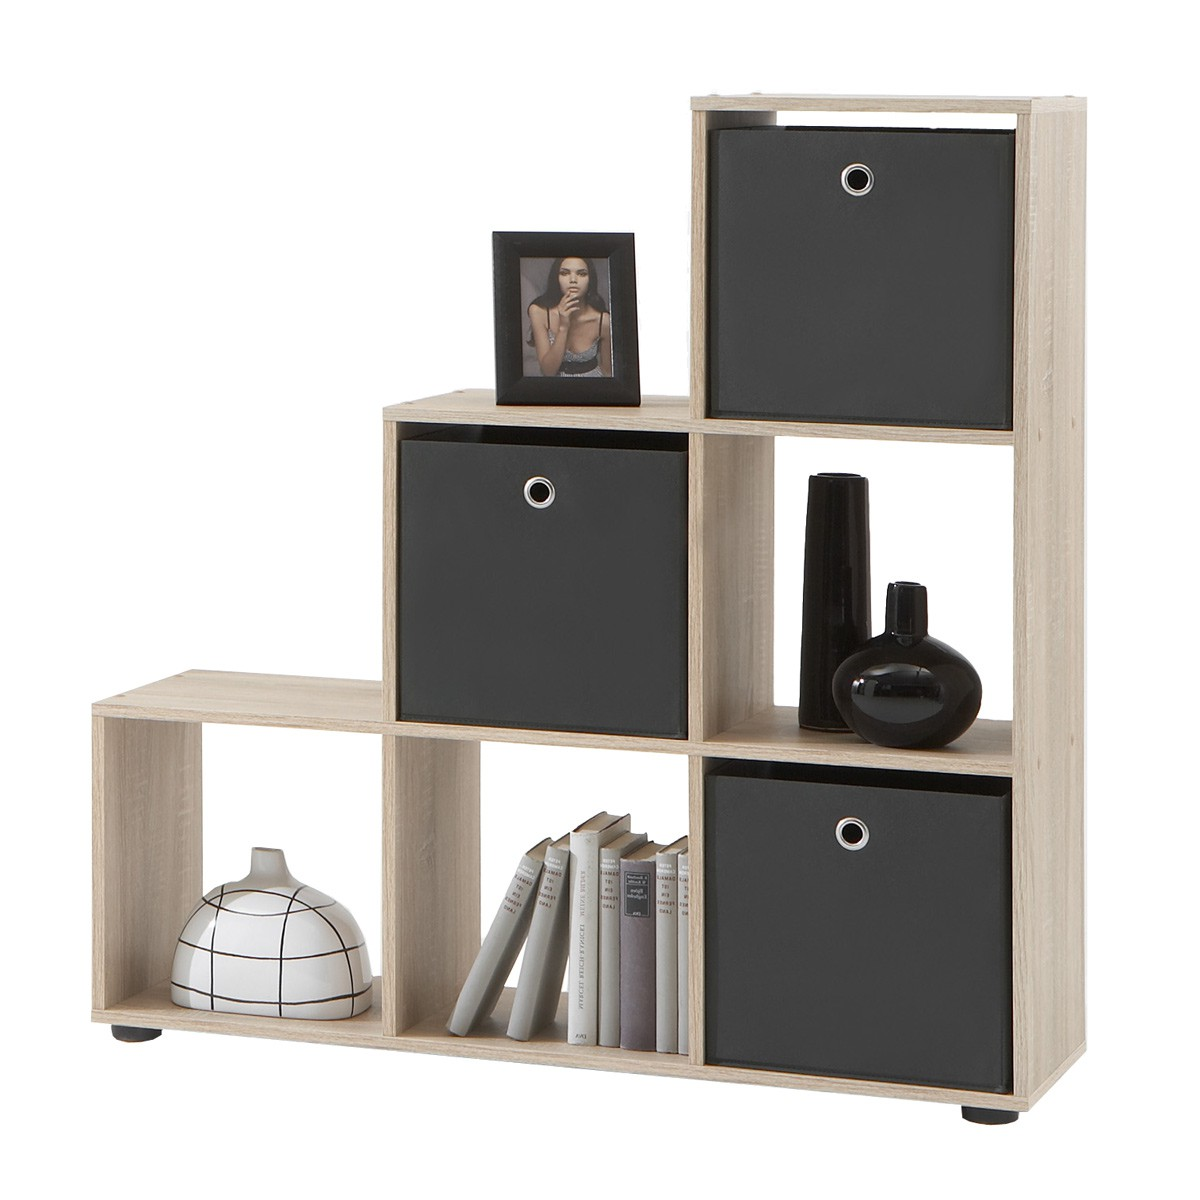 moderne b cherschrank aus holz cubus by sebastian desch team 7 pictures to pin on pinterest. Black Bedroom Furniture Sets. Home Design Ideas